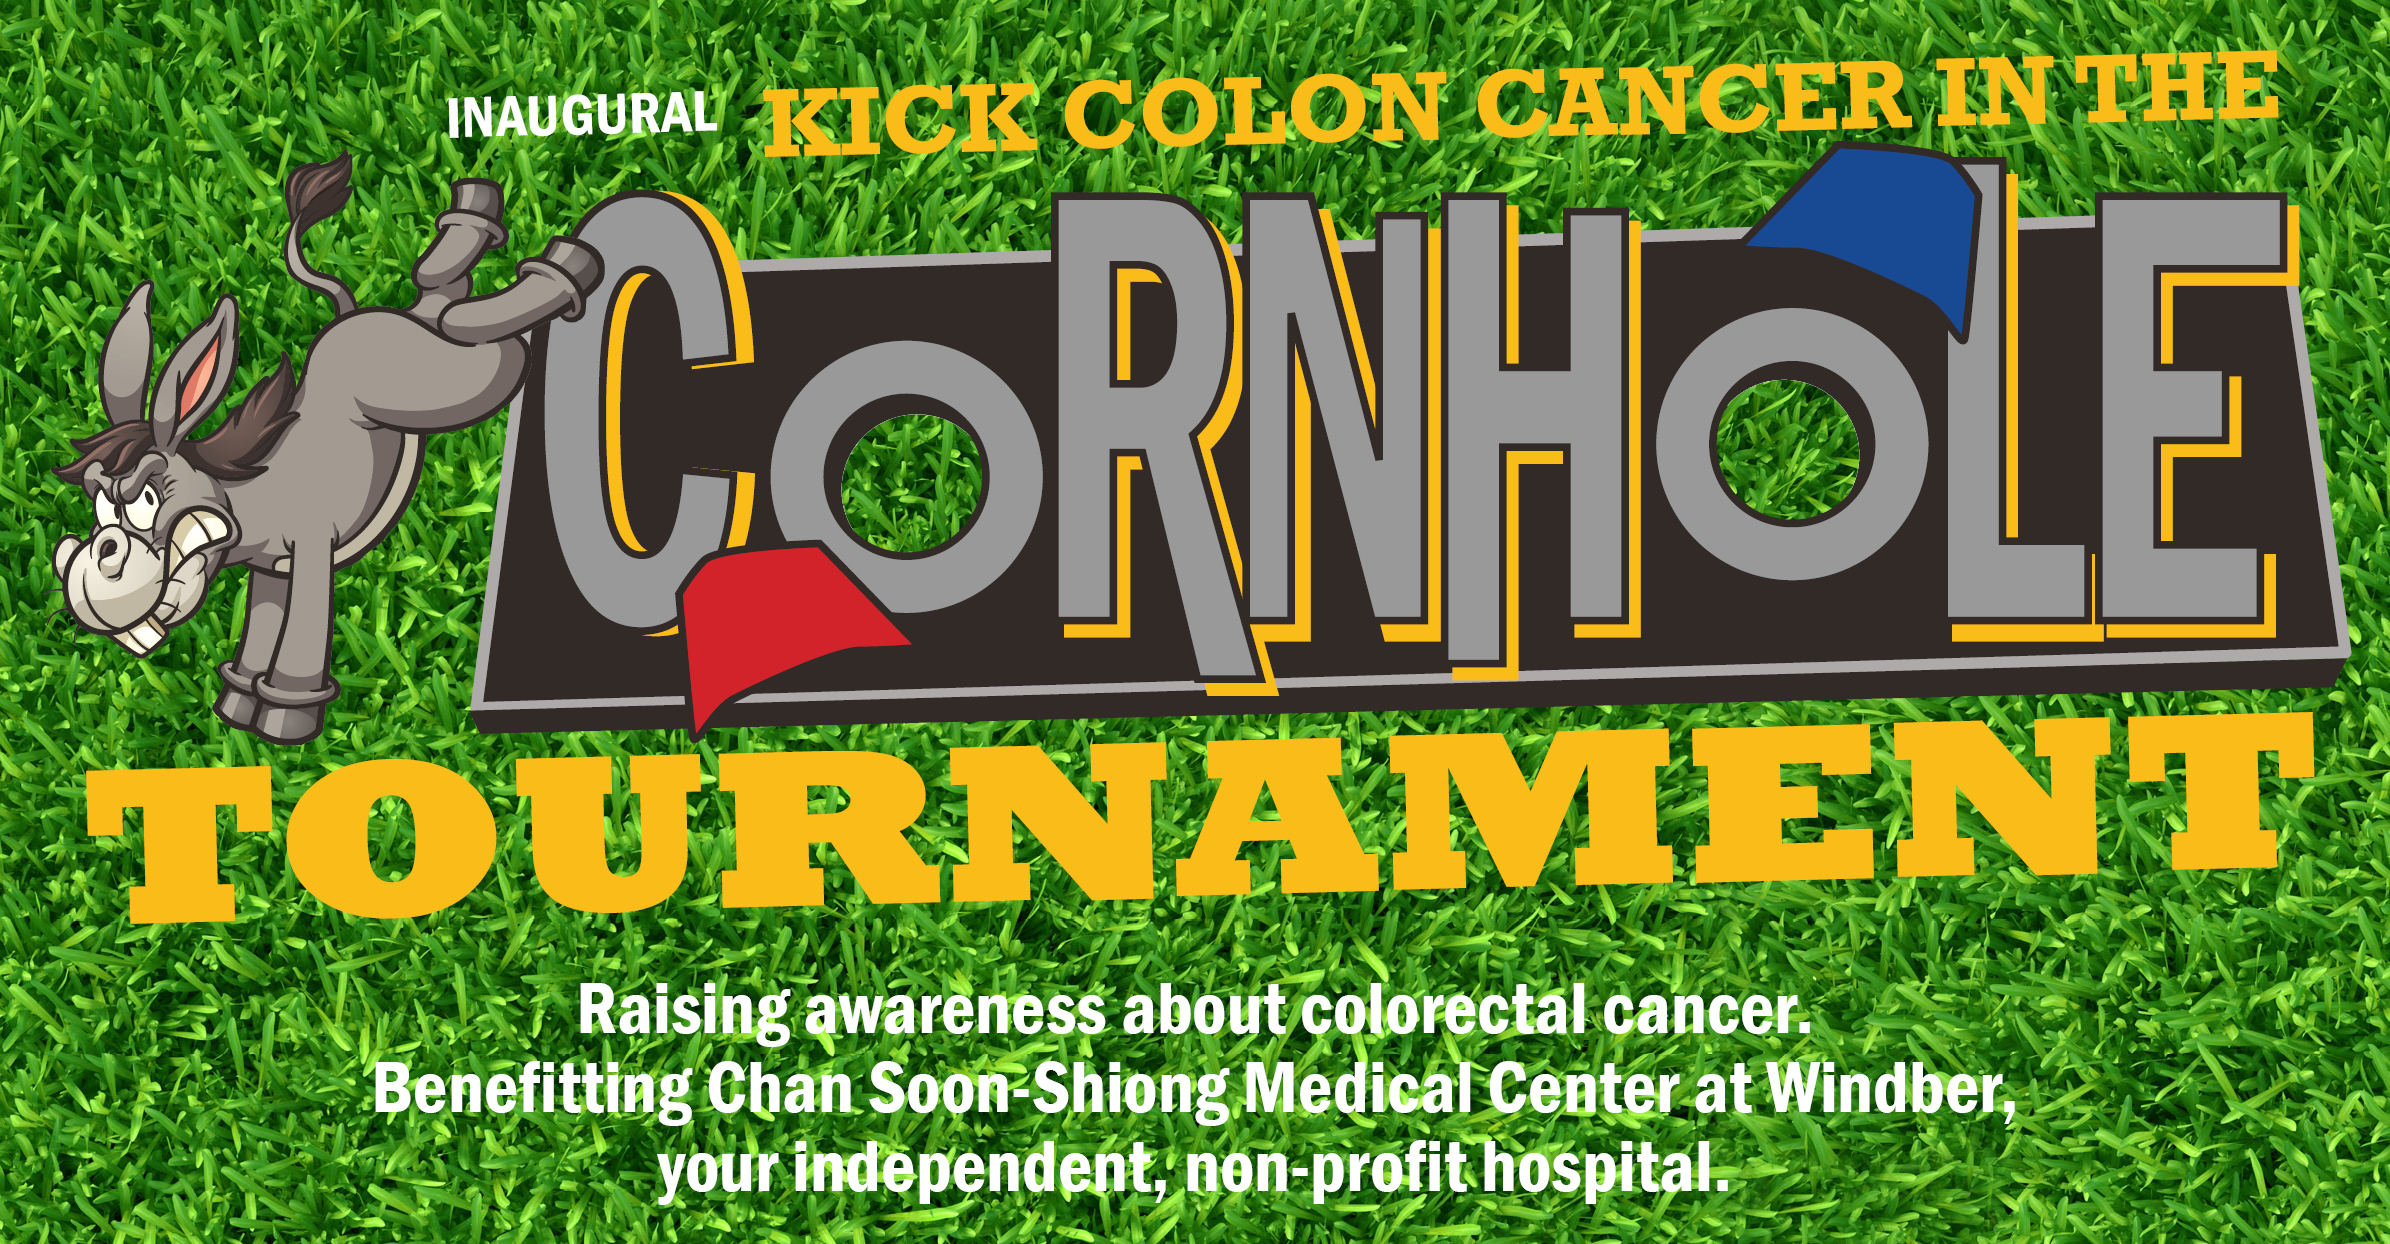 Kick Colon Cancer In The Cornhole Tournament Canceled Chan Soon Shiong Medical Center At Windber